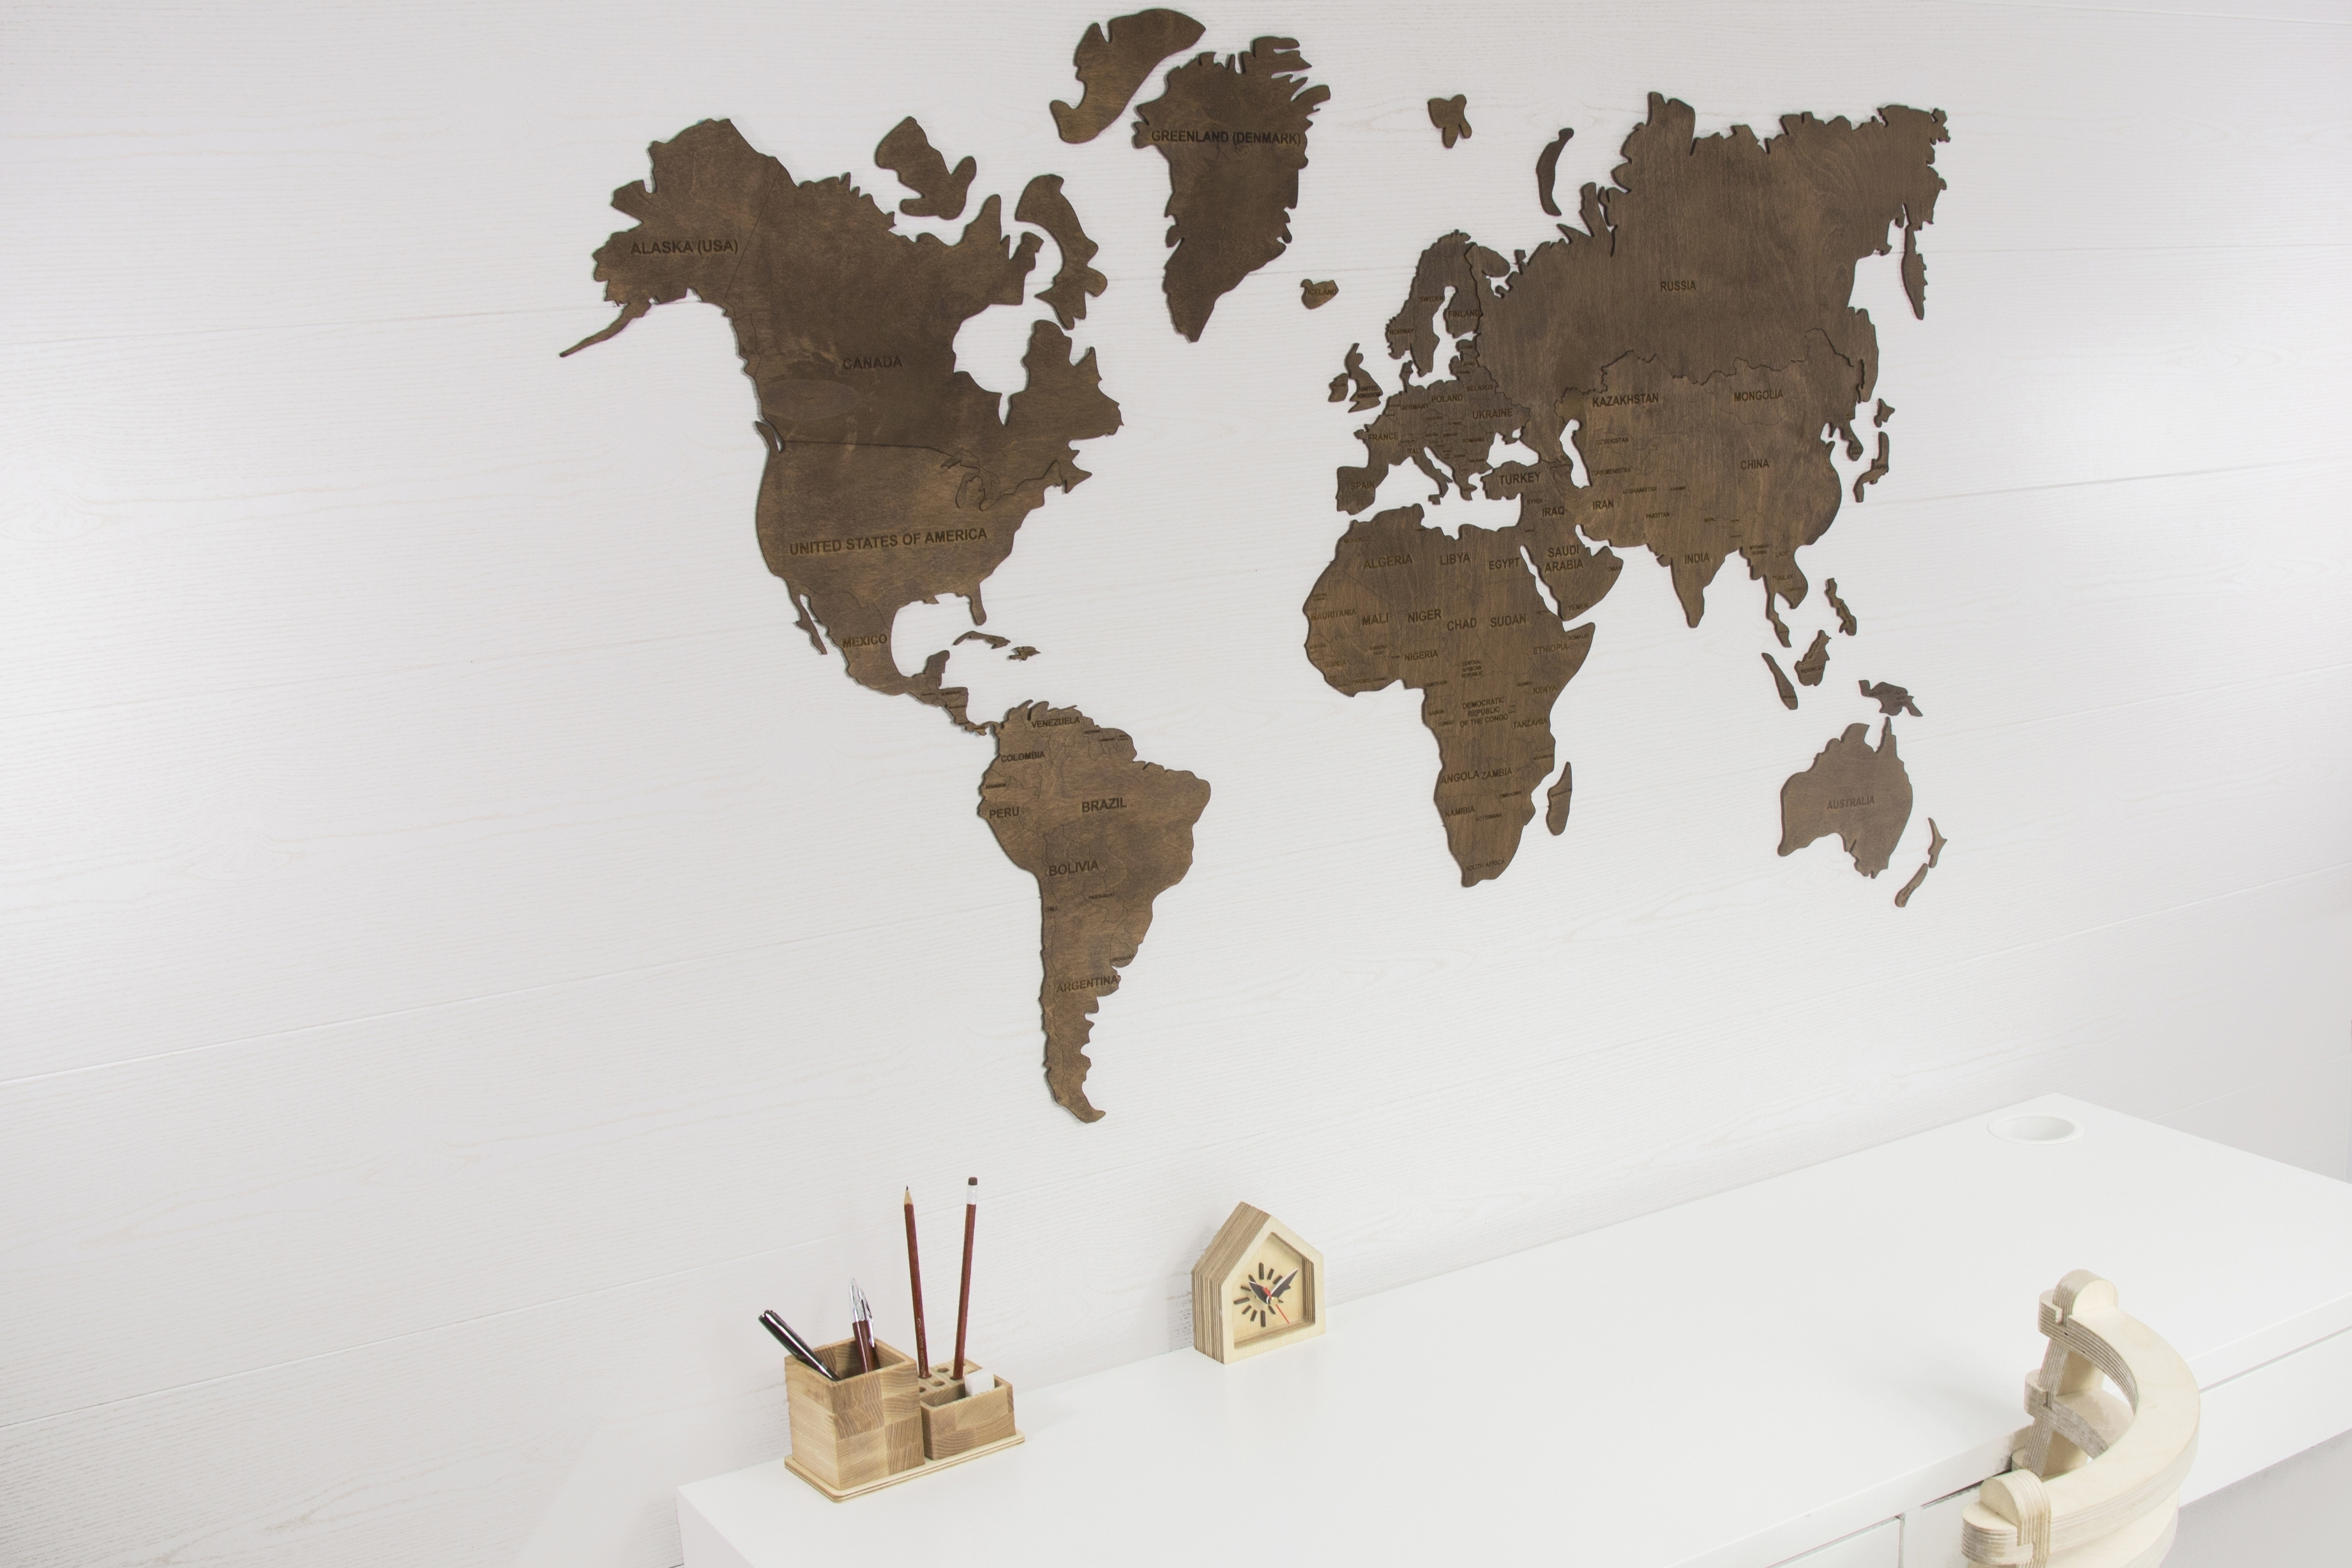 World Map Wall, World Map Hanging, World Map Wooden, World Map Wood Pertaining To Most Current Wall Art World Map (View 9 of 20)